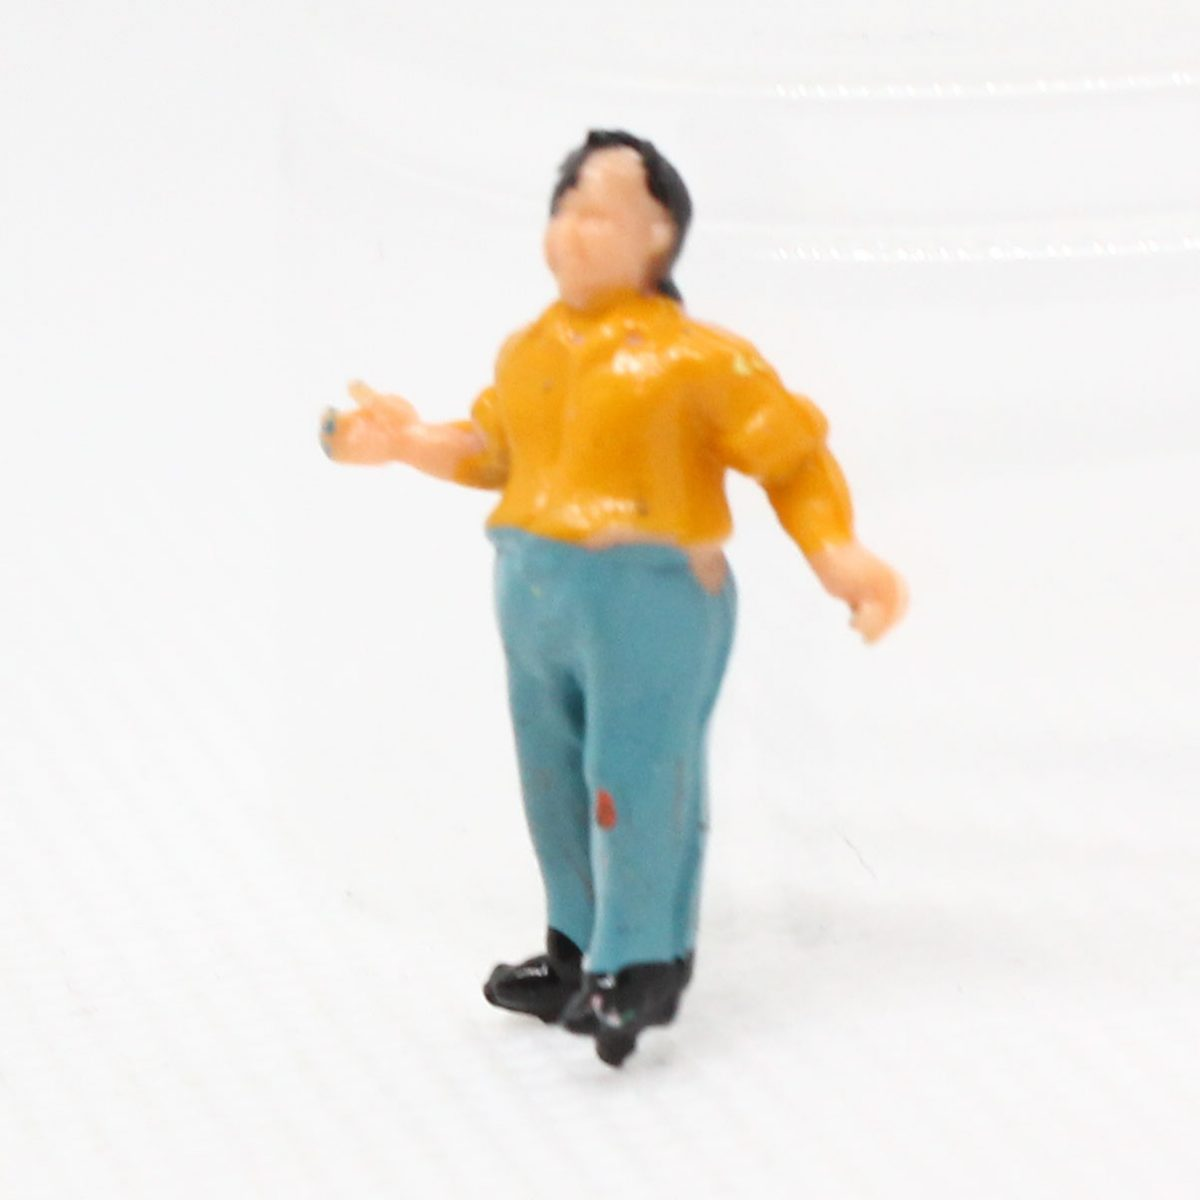 Model figure STANDING - assorted painted Image 1